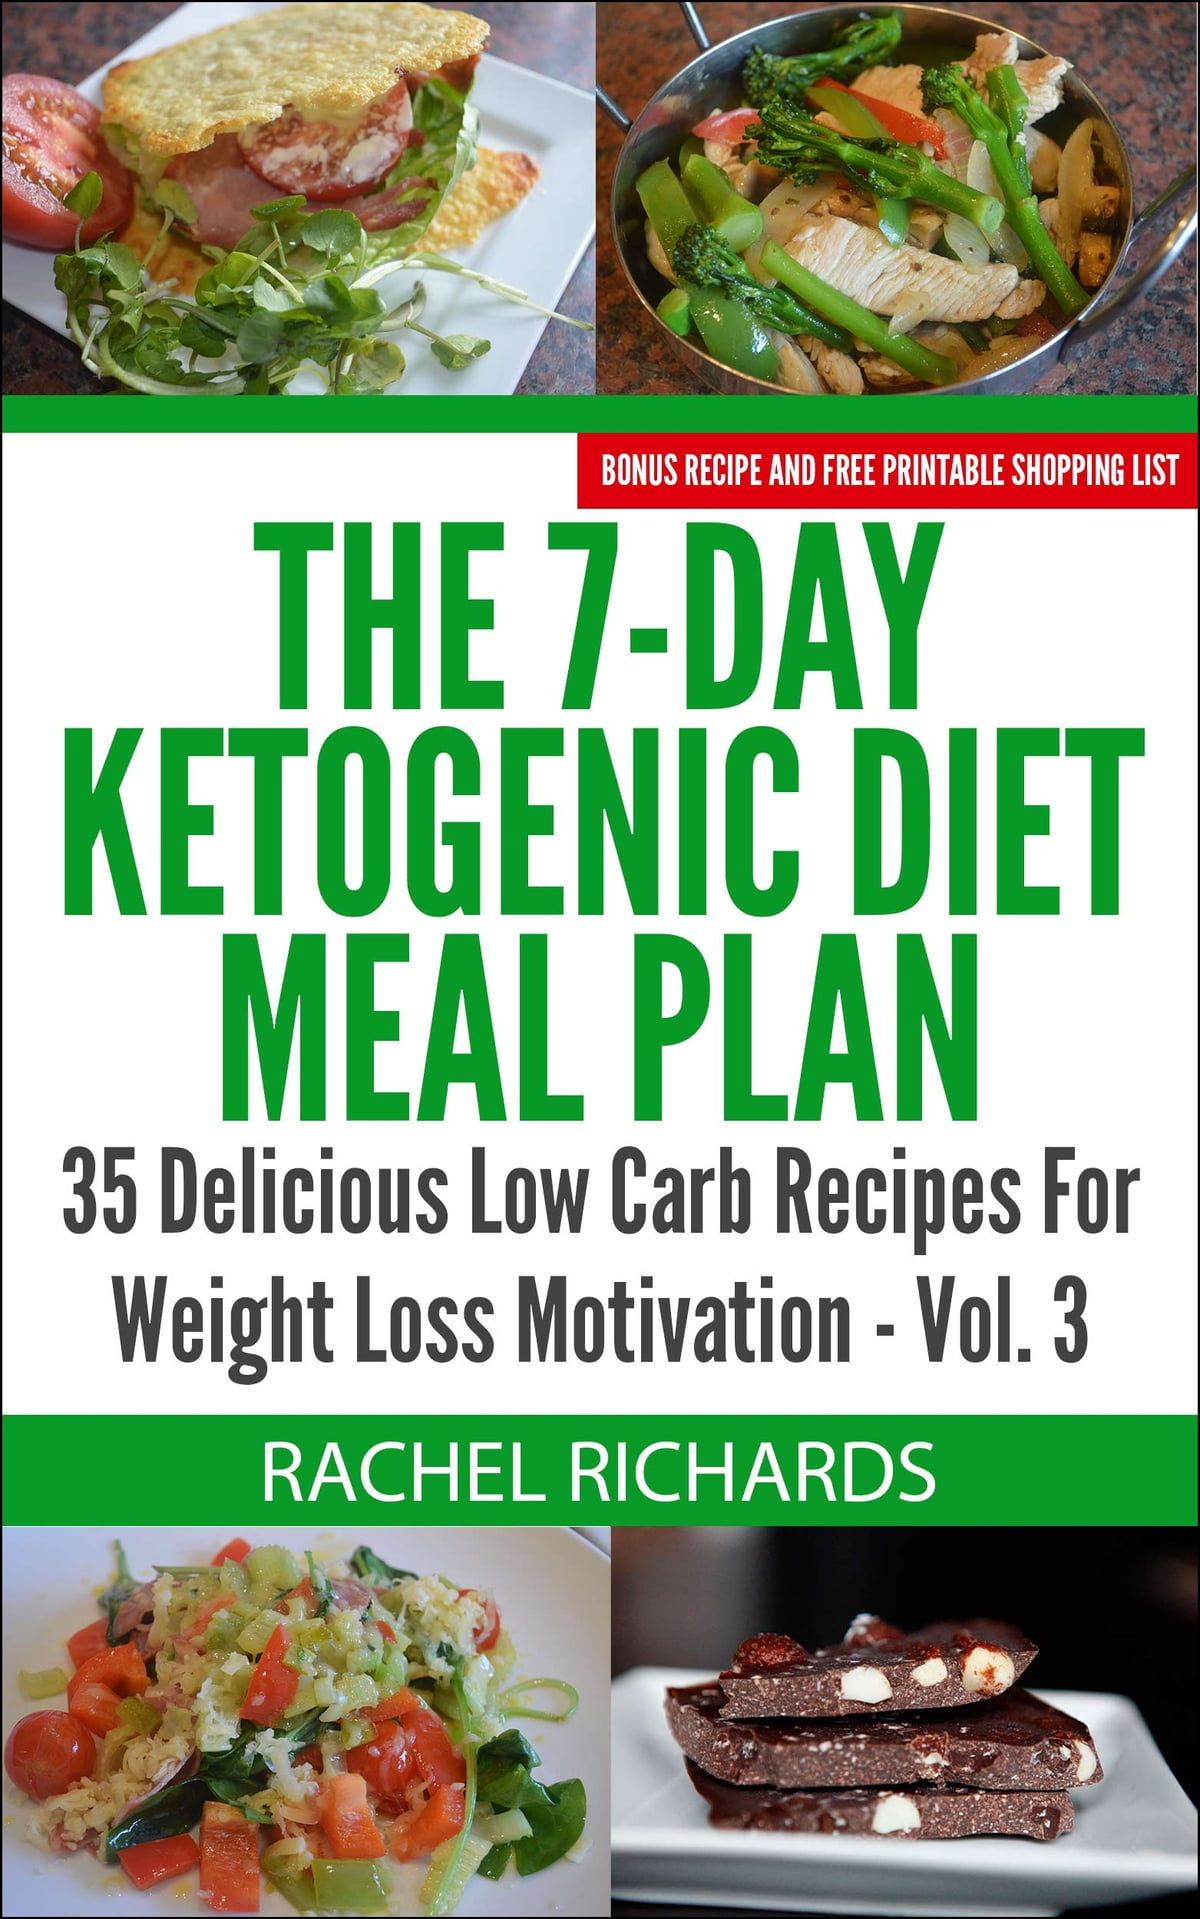 The 7 Day Ketogenic T Meal Plan 35 Delicious Low Carb Recipes For Weight Loss Motivation Volume 3 Ebook By Rachel Richards 9781987863031 Rakuten